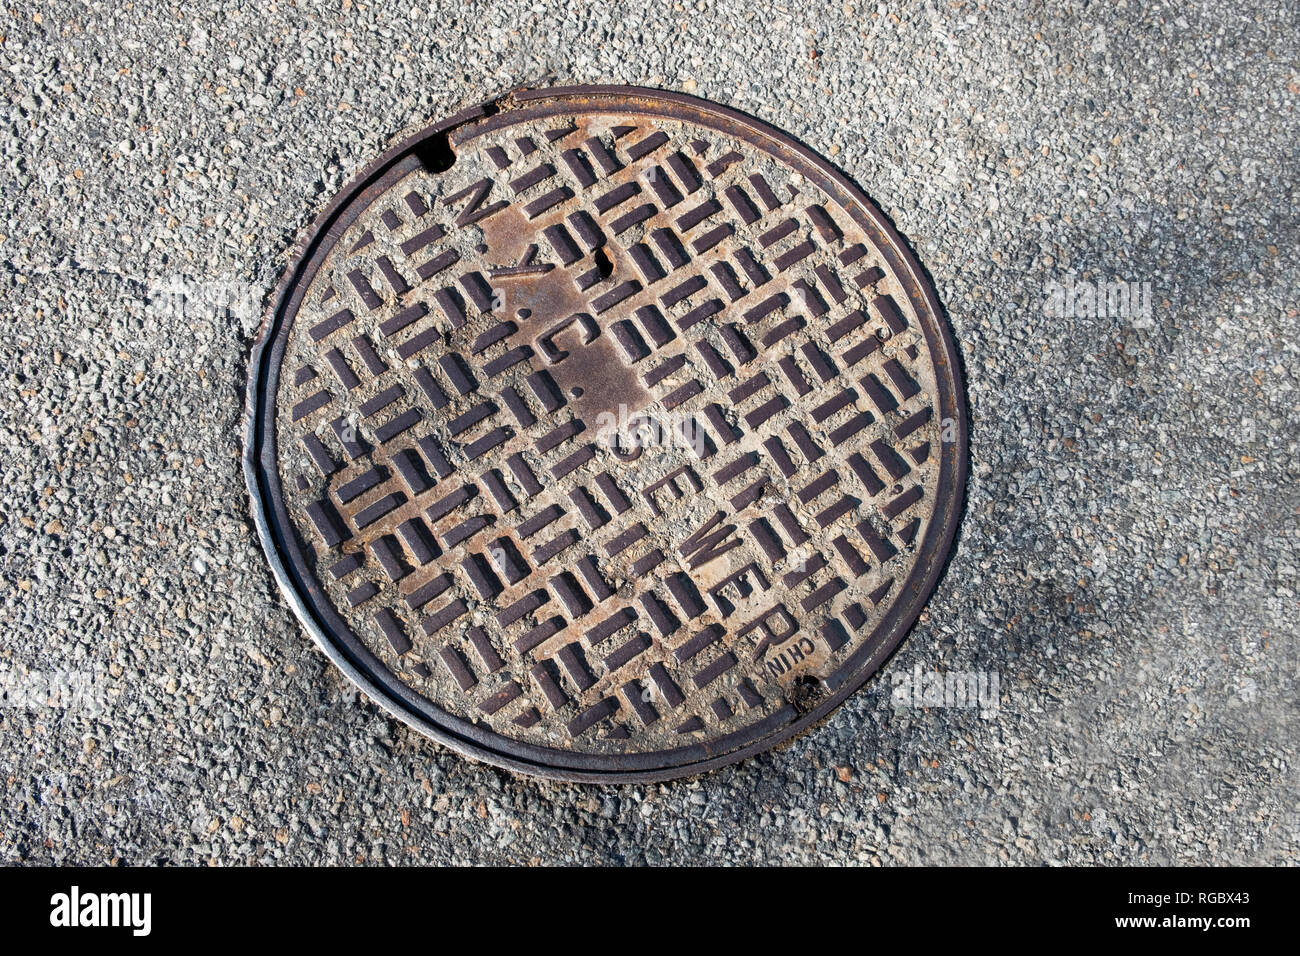 A manhole cover in Flushing, Queens, New York that was made in China. - Stock Image